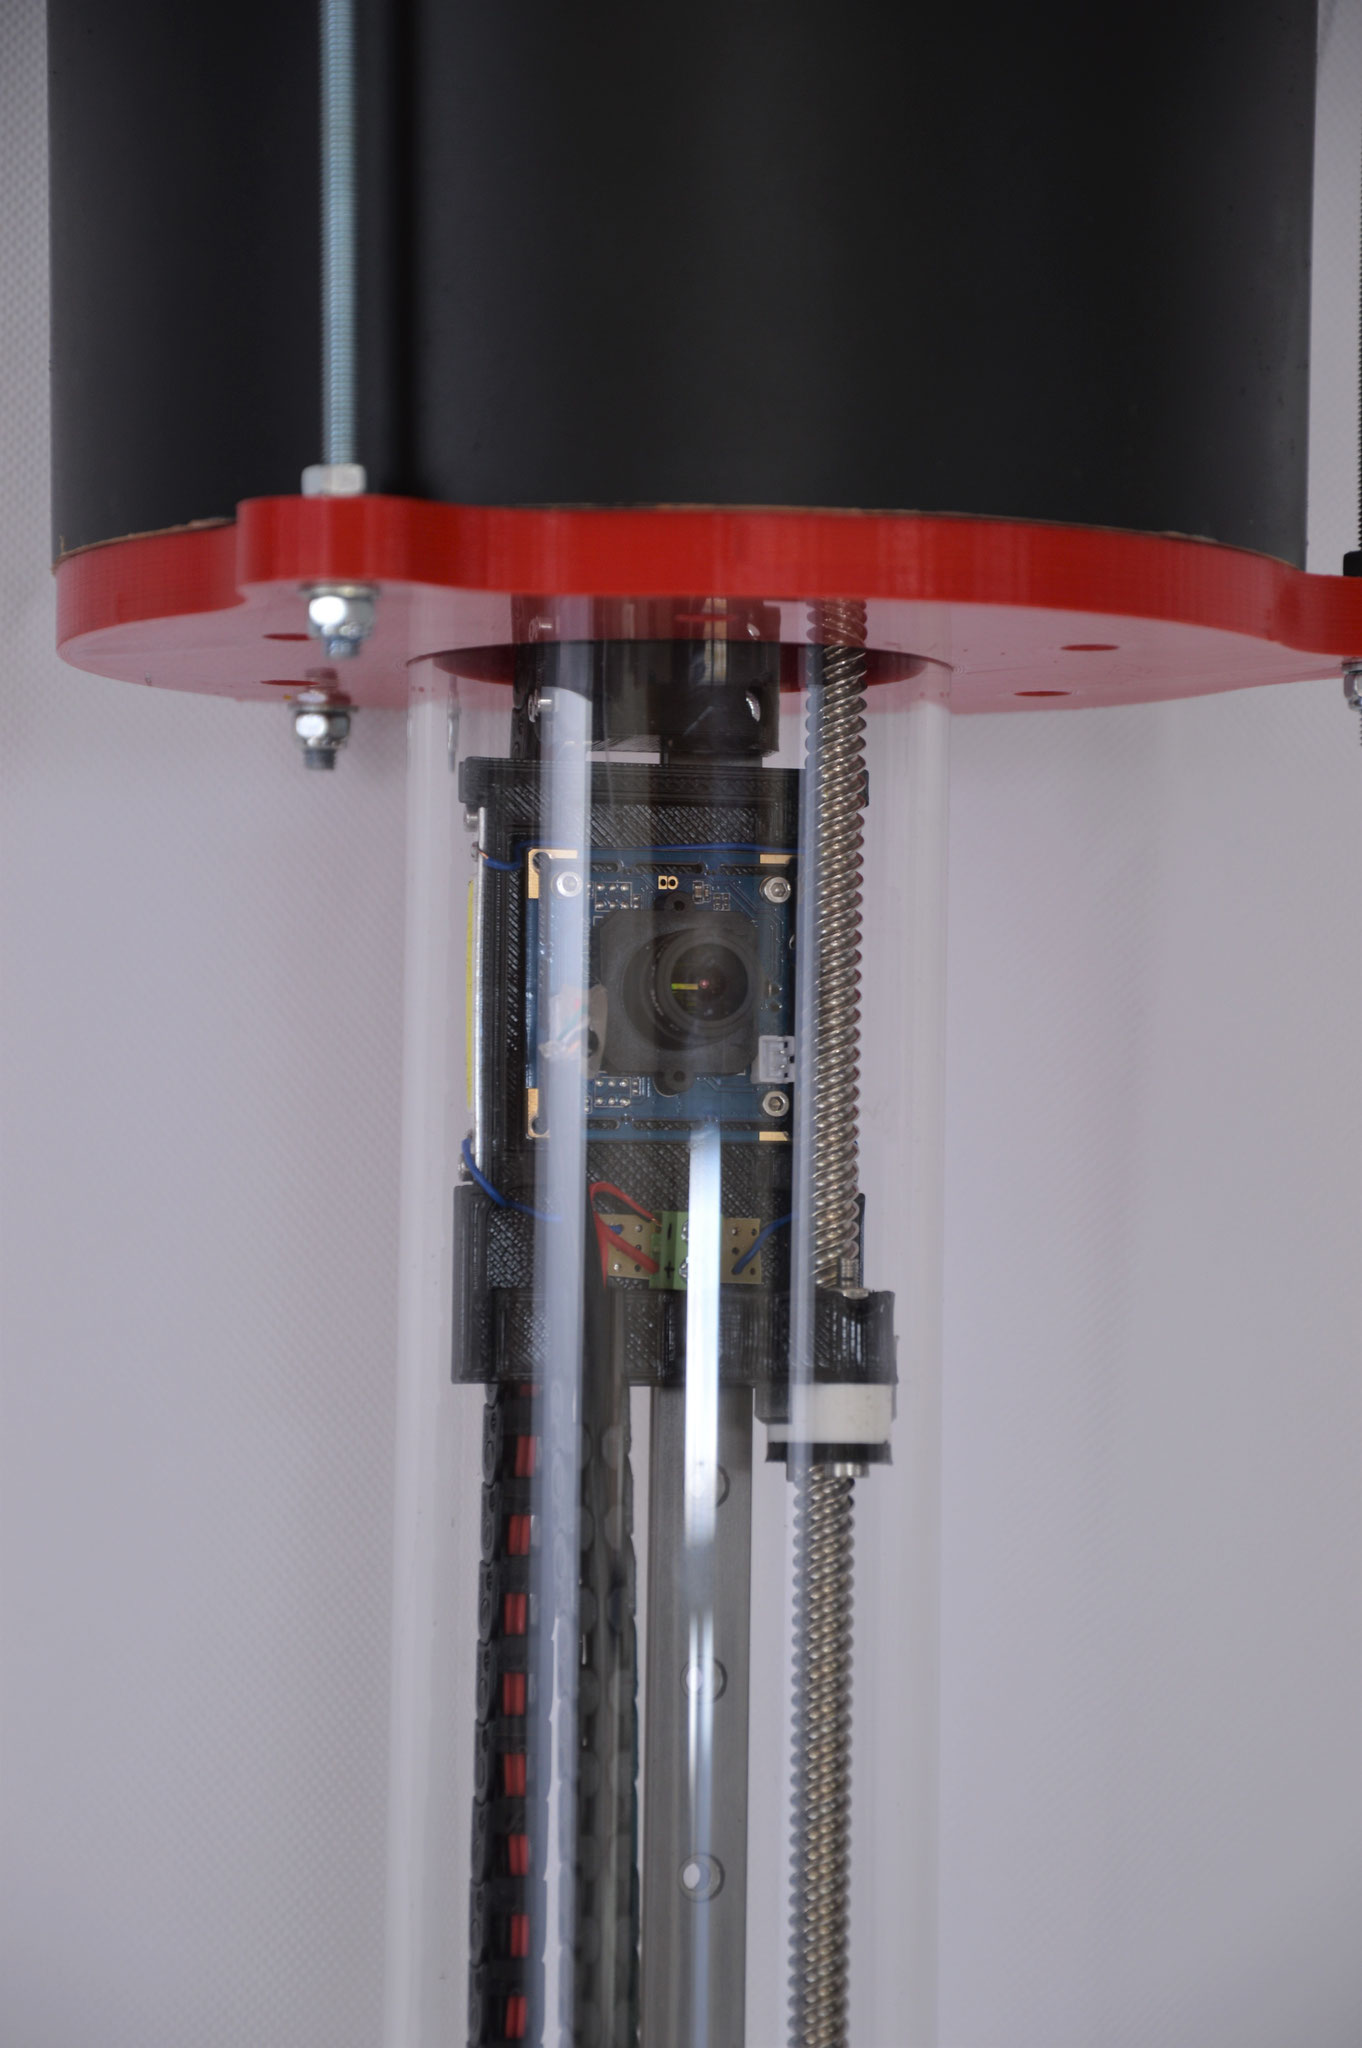 PREVIEW: VSI Automatic MR System - for angled and vertical MRtubes